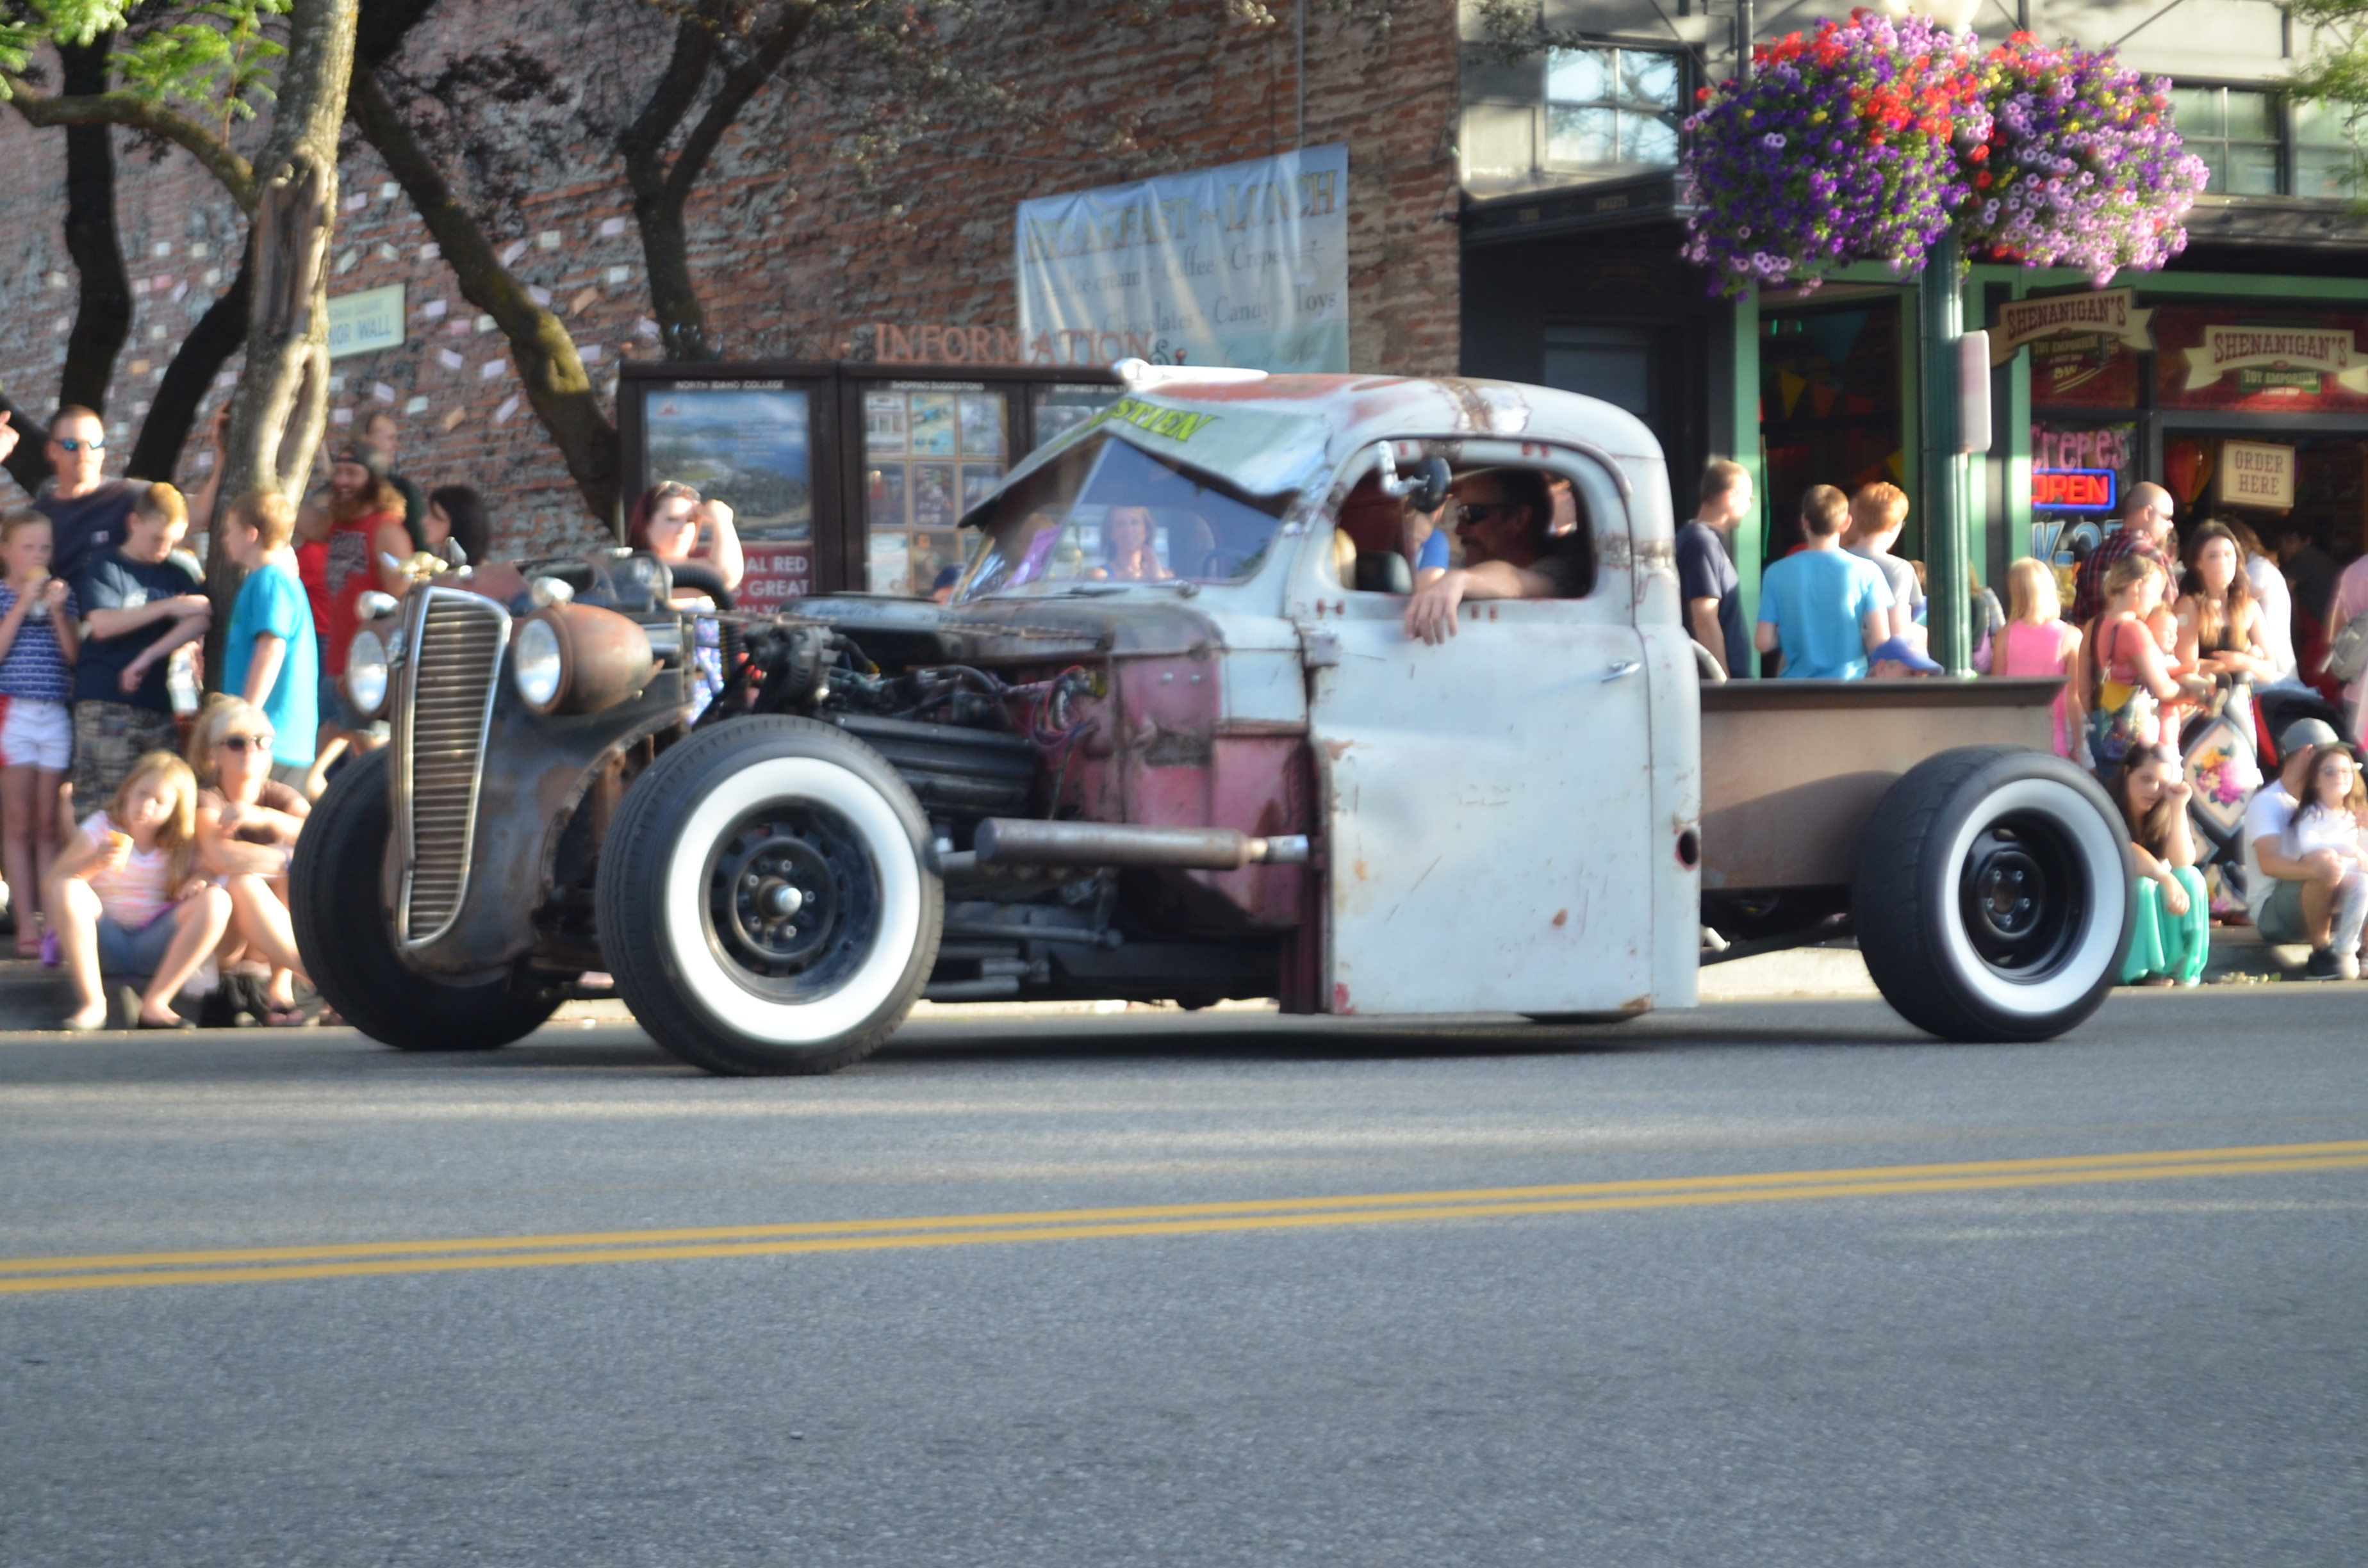 Spotted this rat rod in downtown Coeur d'Alene, ID